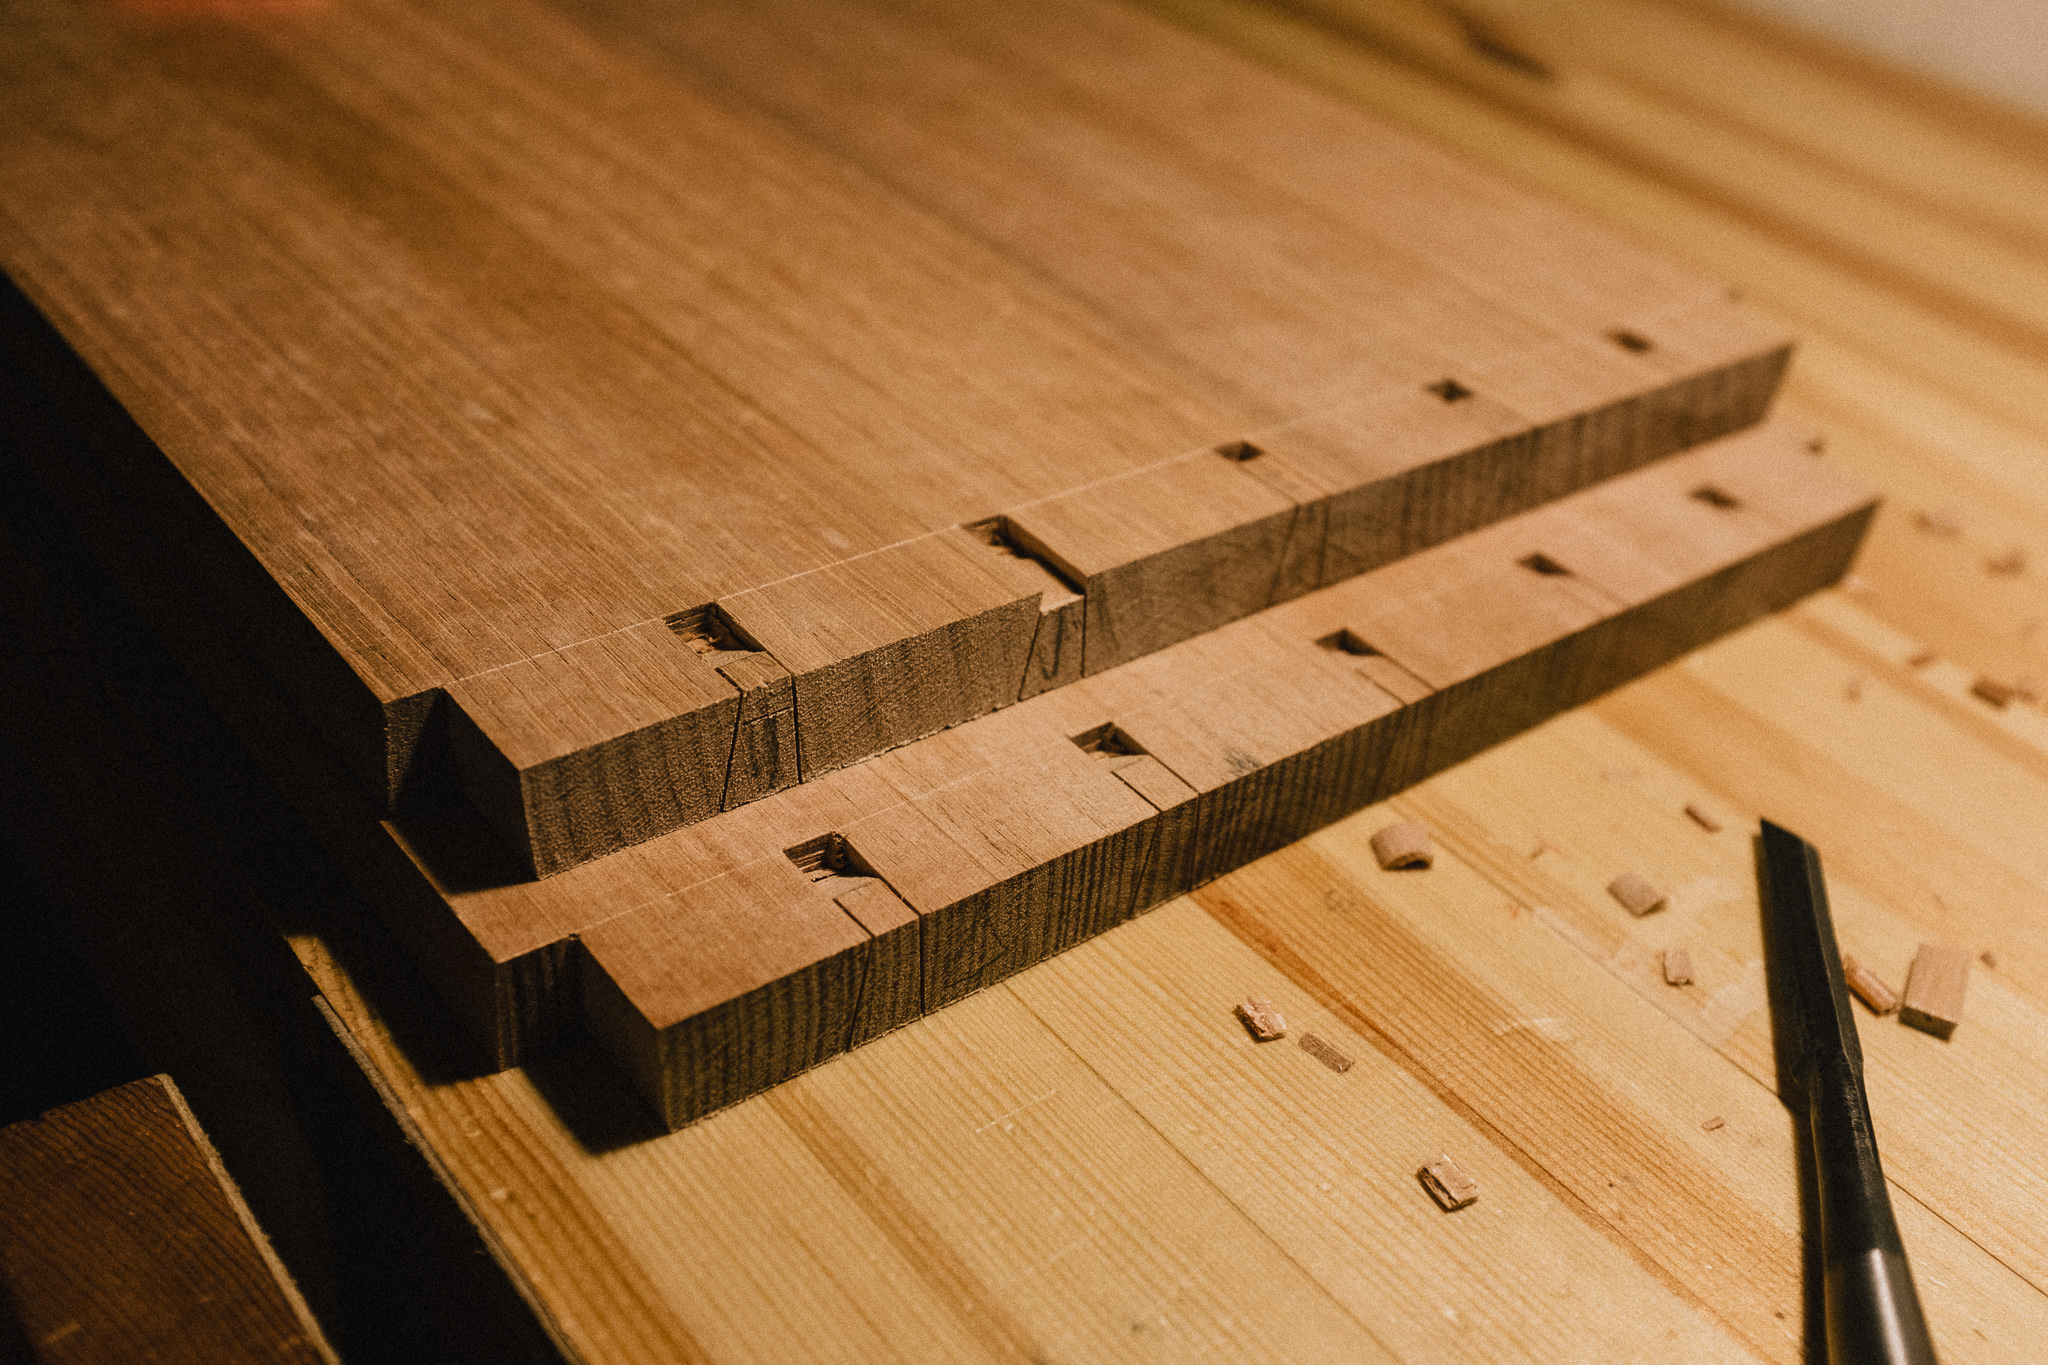 Removing dovetail waste